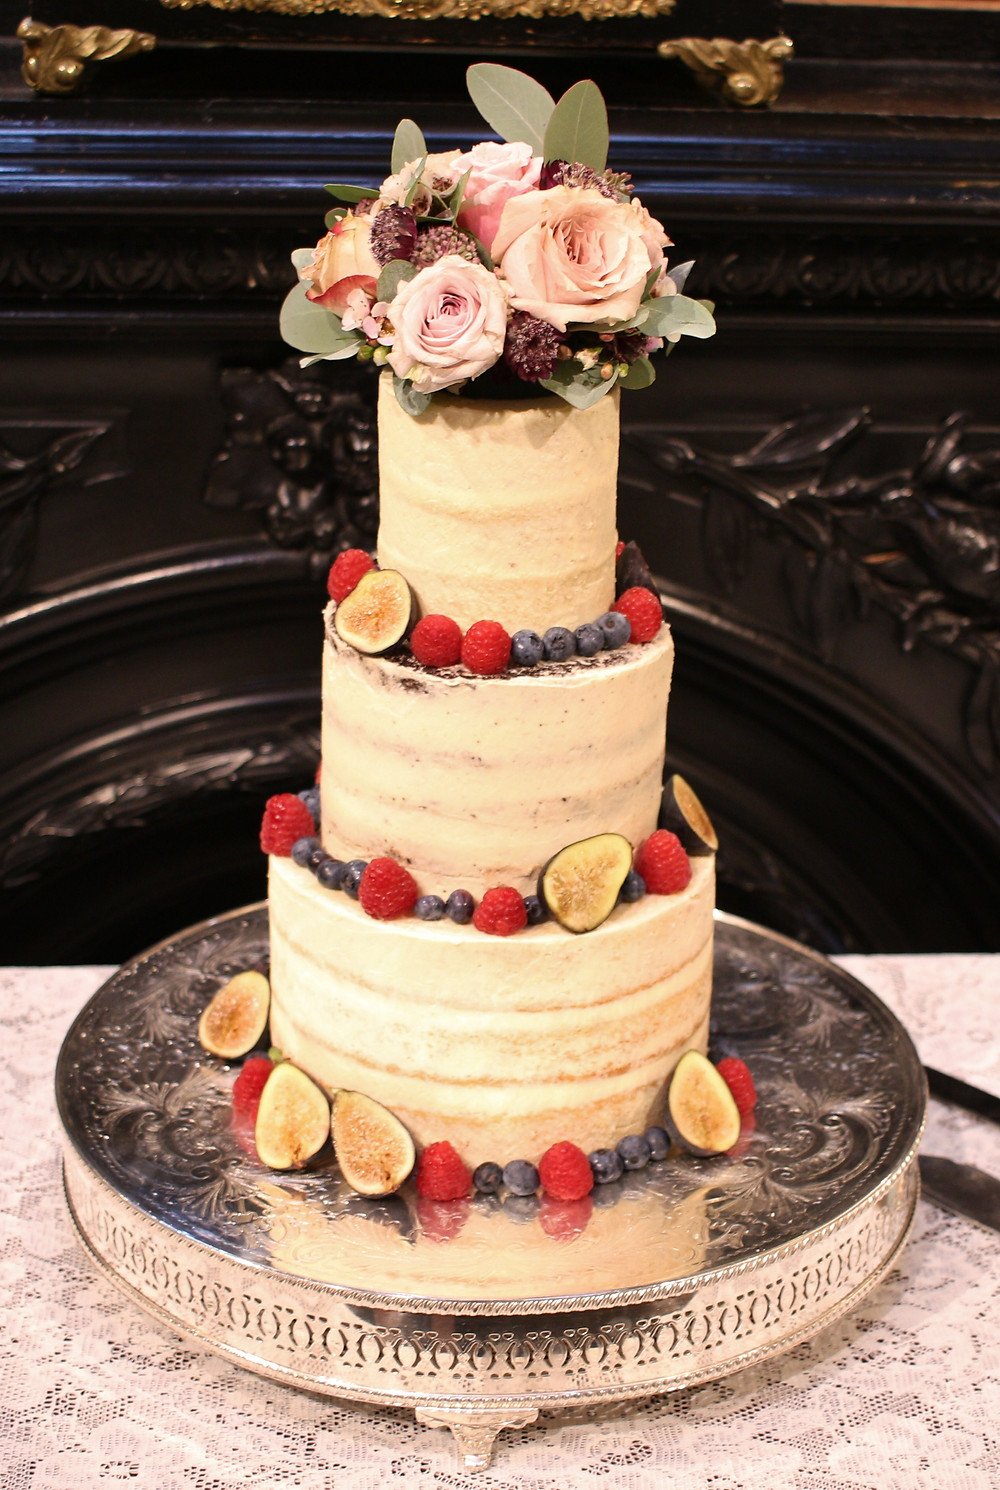 Gluten-free small 3 tier wedding cake